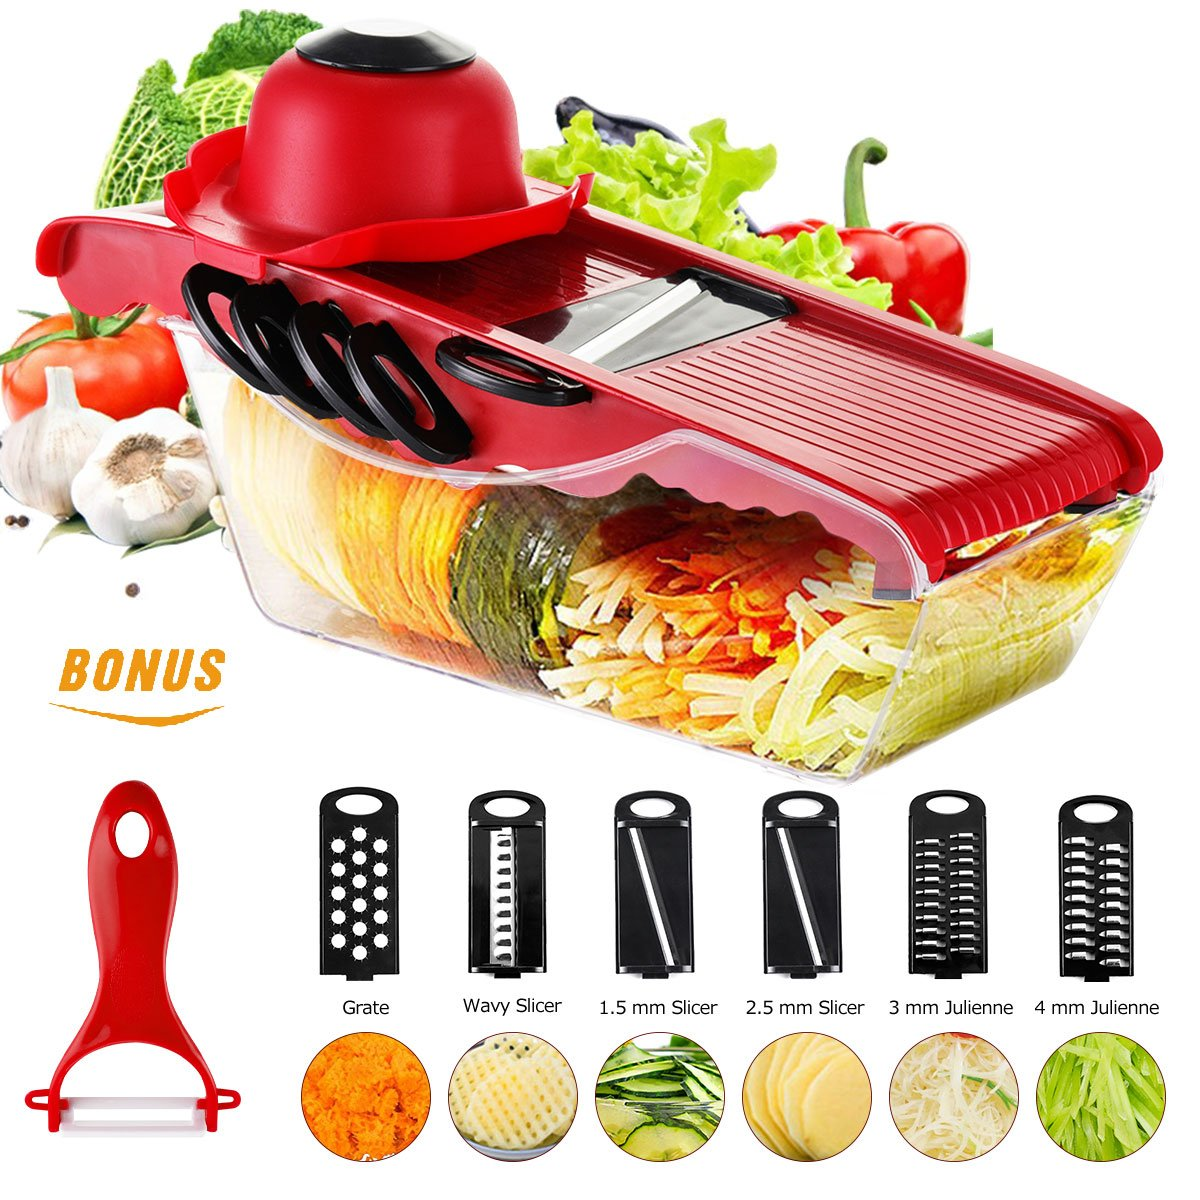 Mandoline Vegetable Slicer Cutter of Godmorn - 6 Interchangeable Blades with Peeler, Hand Protector,Storage Container - Cutter for Potato,Tomato, Onion, Cucumber,Cheese etc